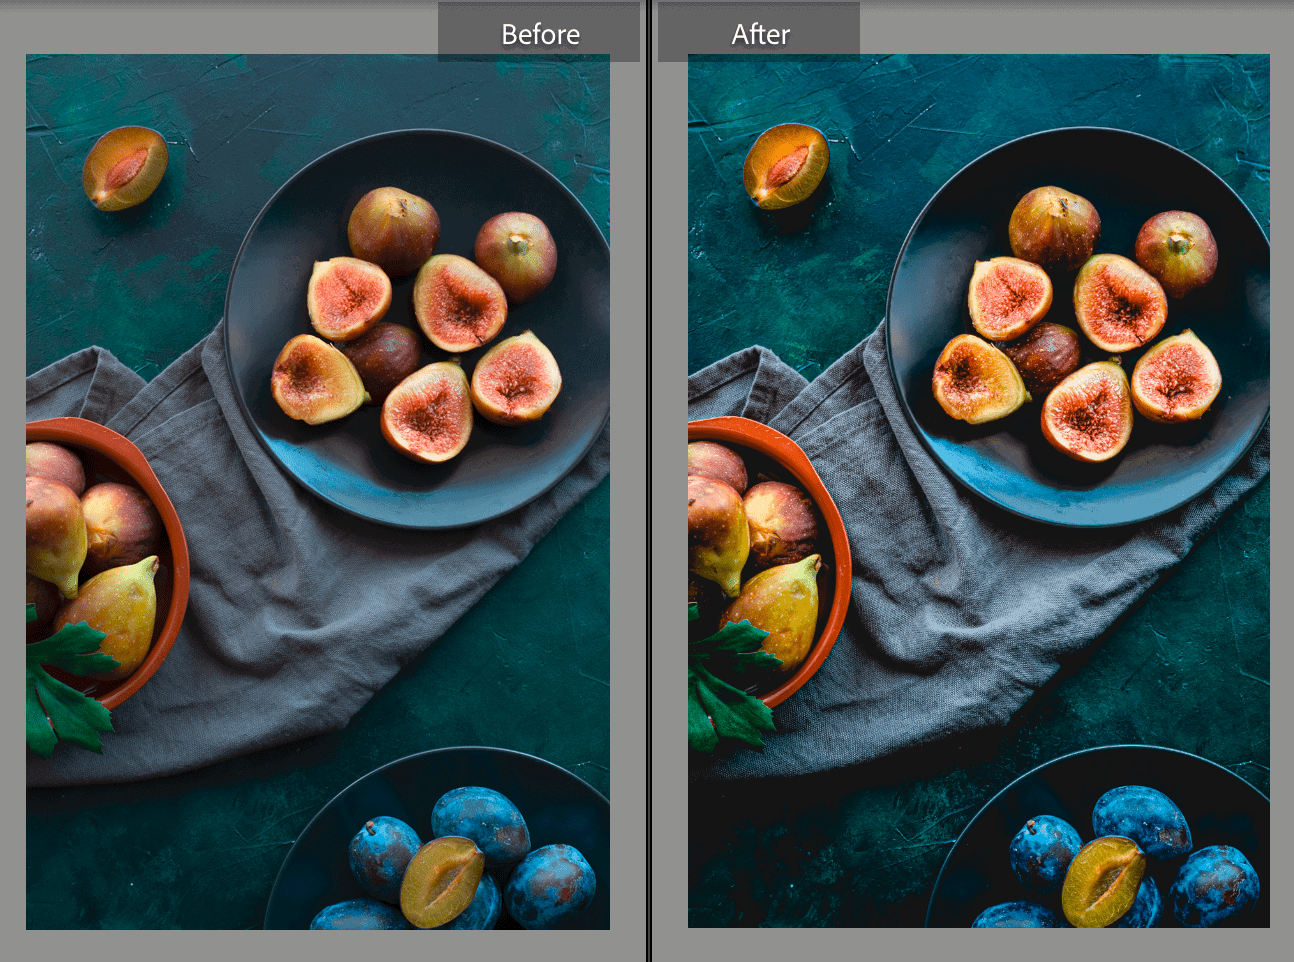 two photos before and after of figs on a green background